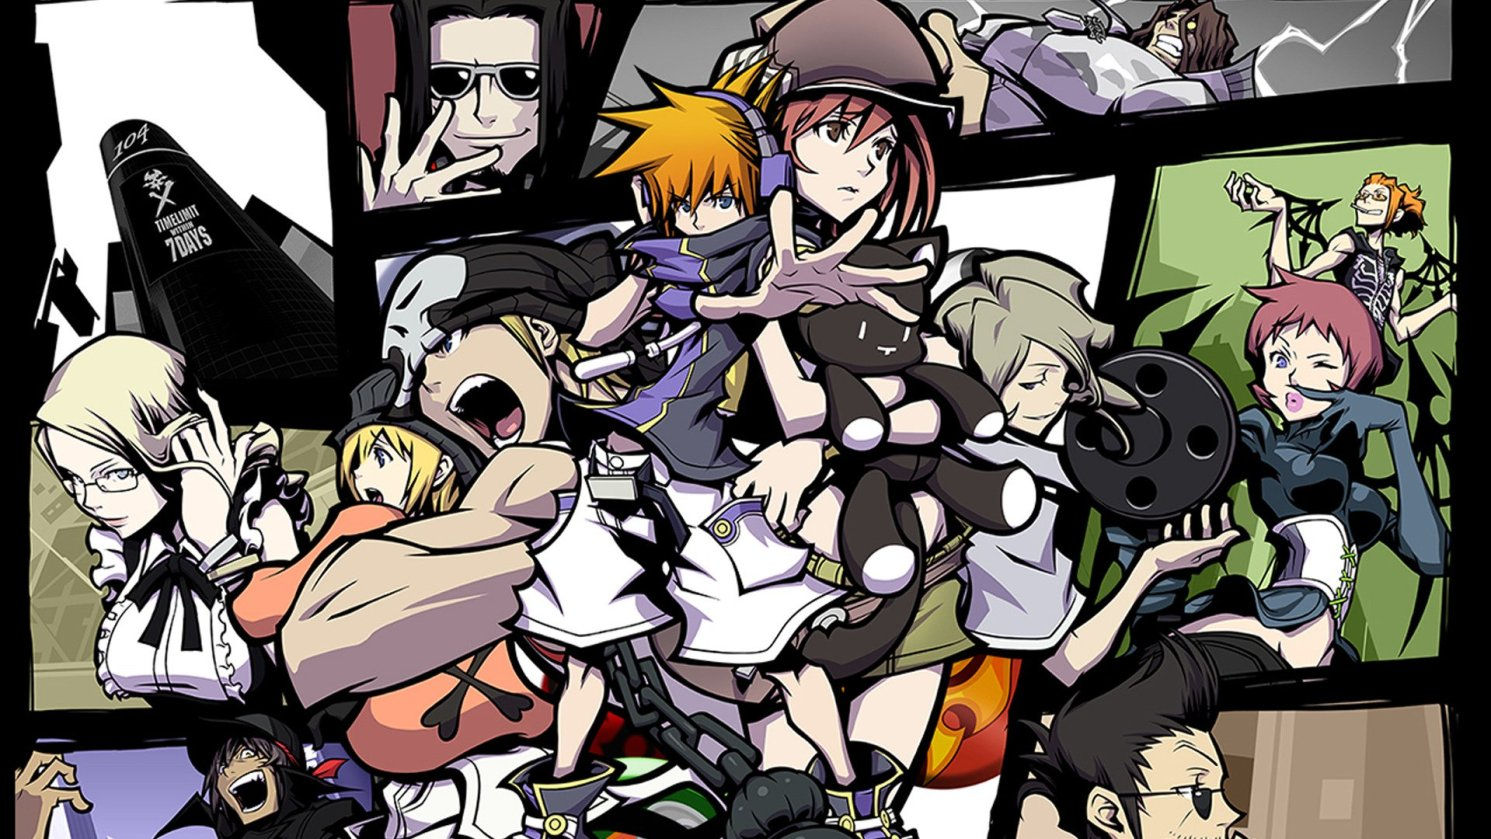 fecha de lanzamiento de The World Ends With You -Final Remix-